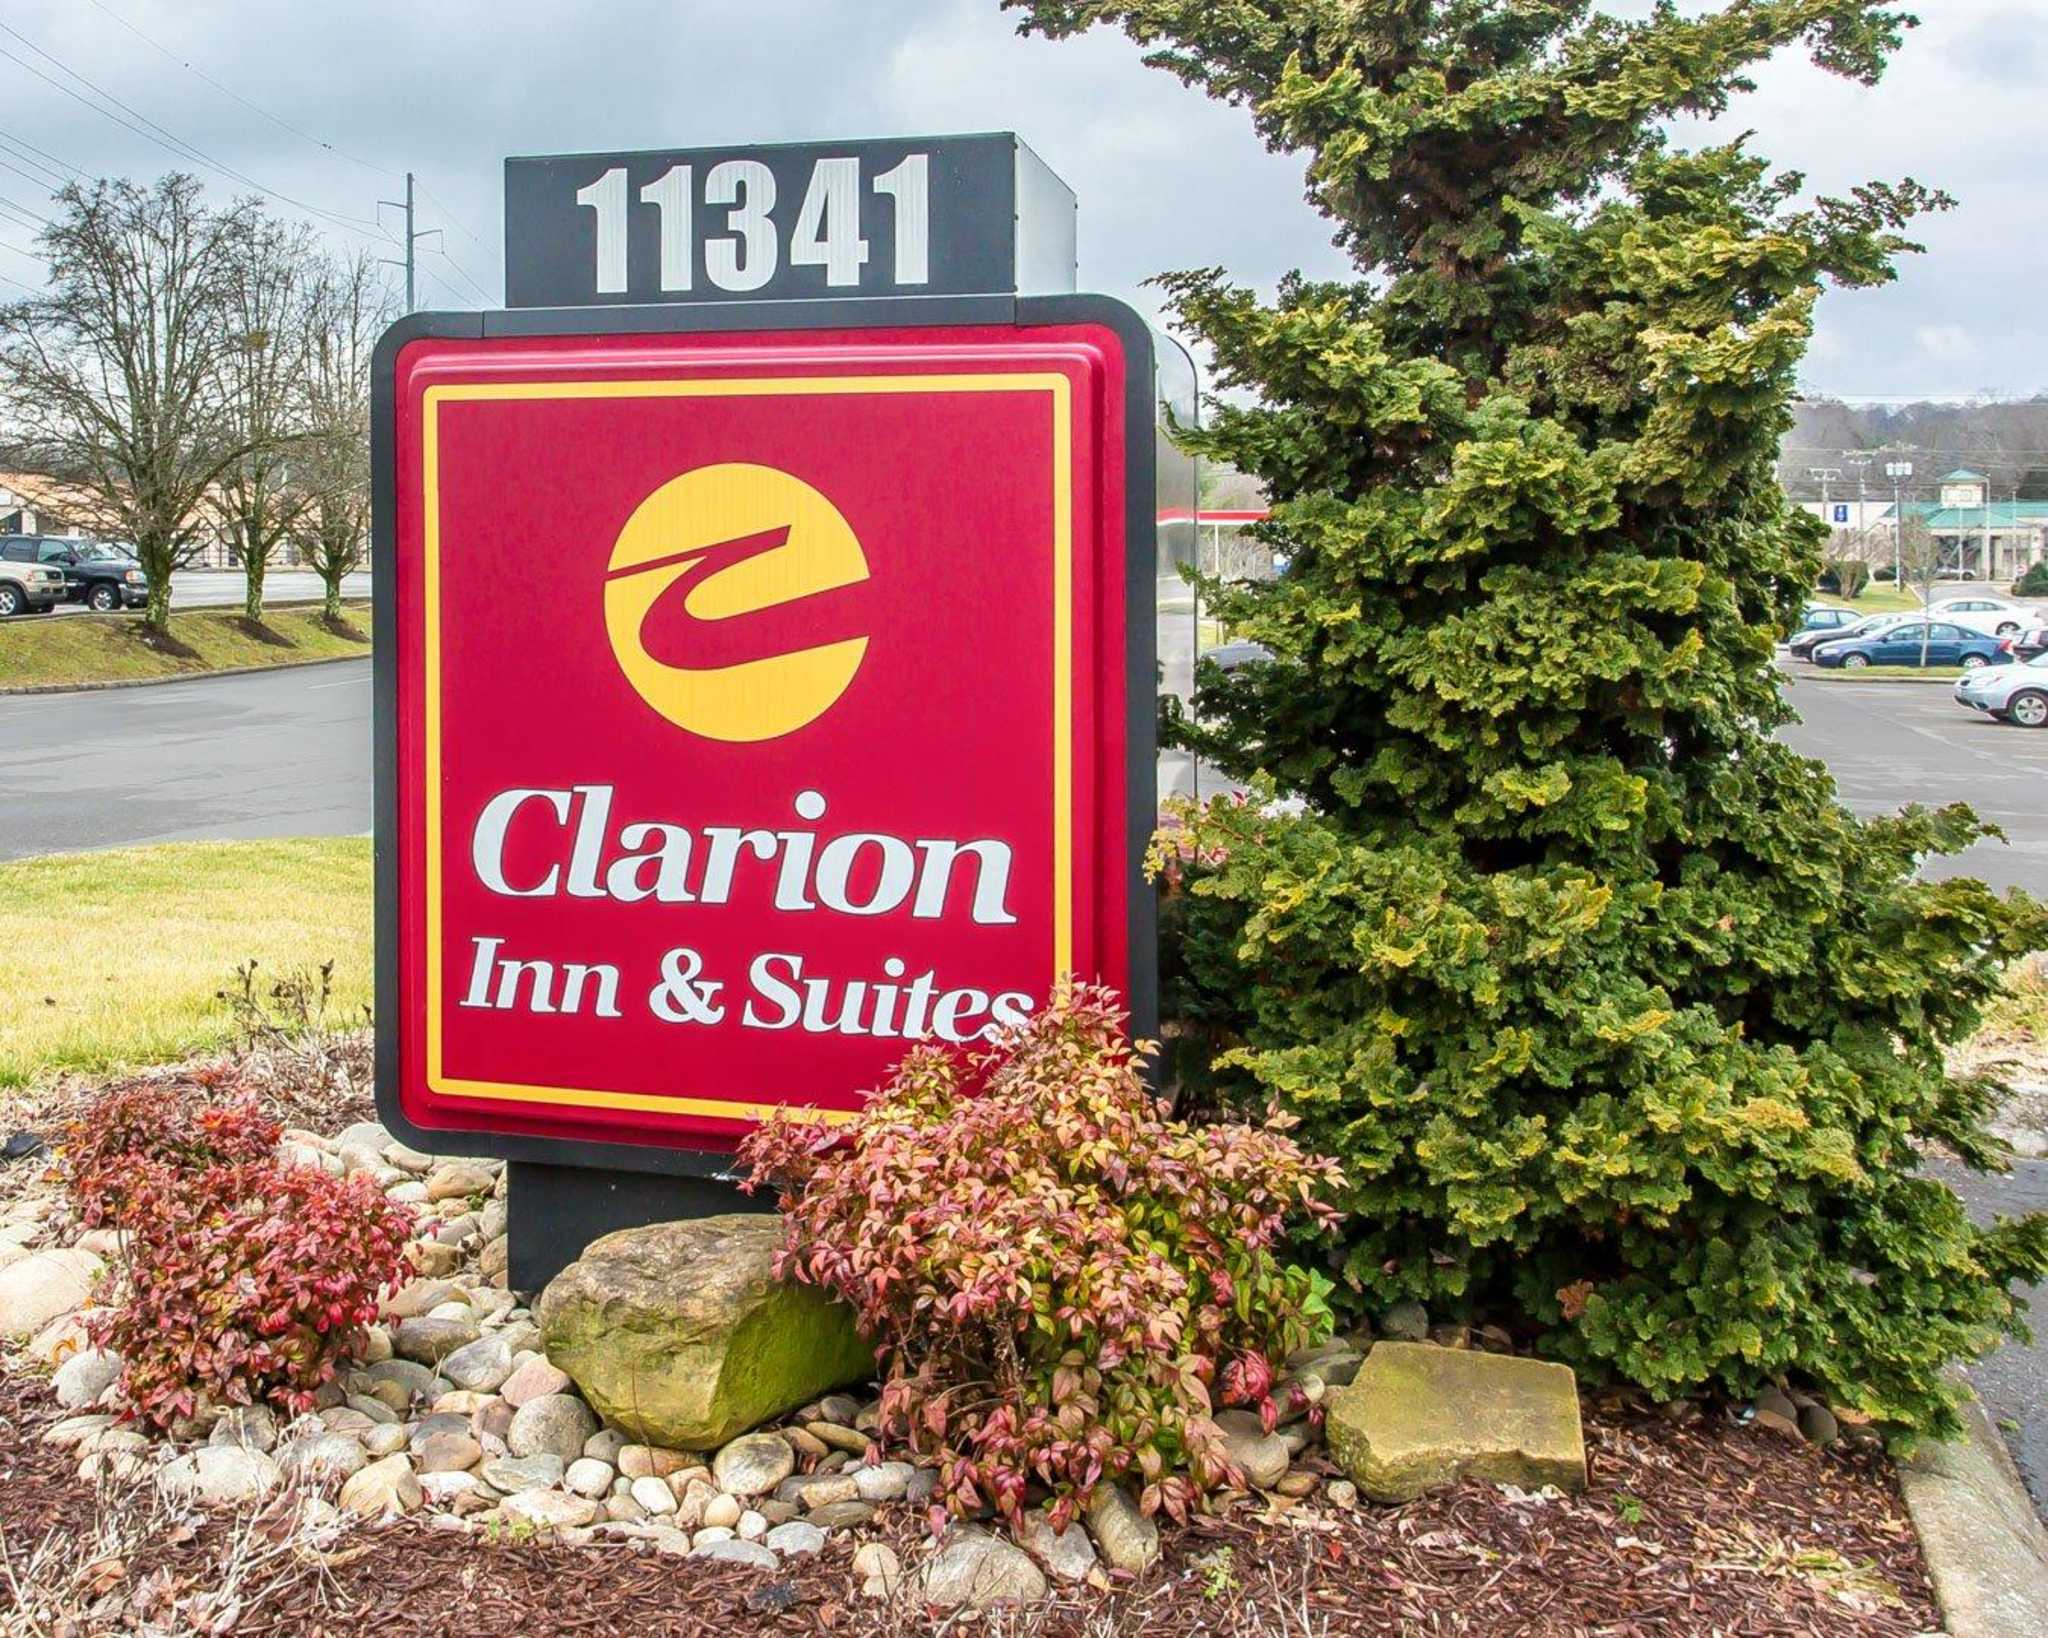 Clarion Inn & Suites West Knoxville image 2